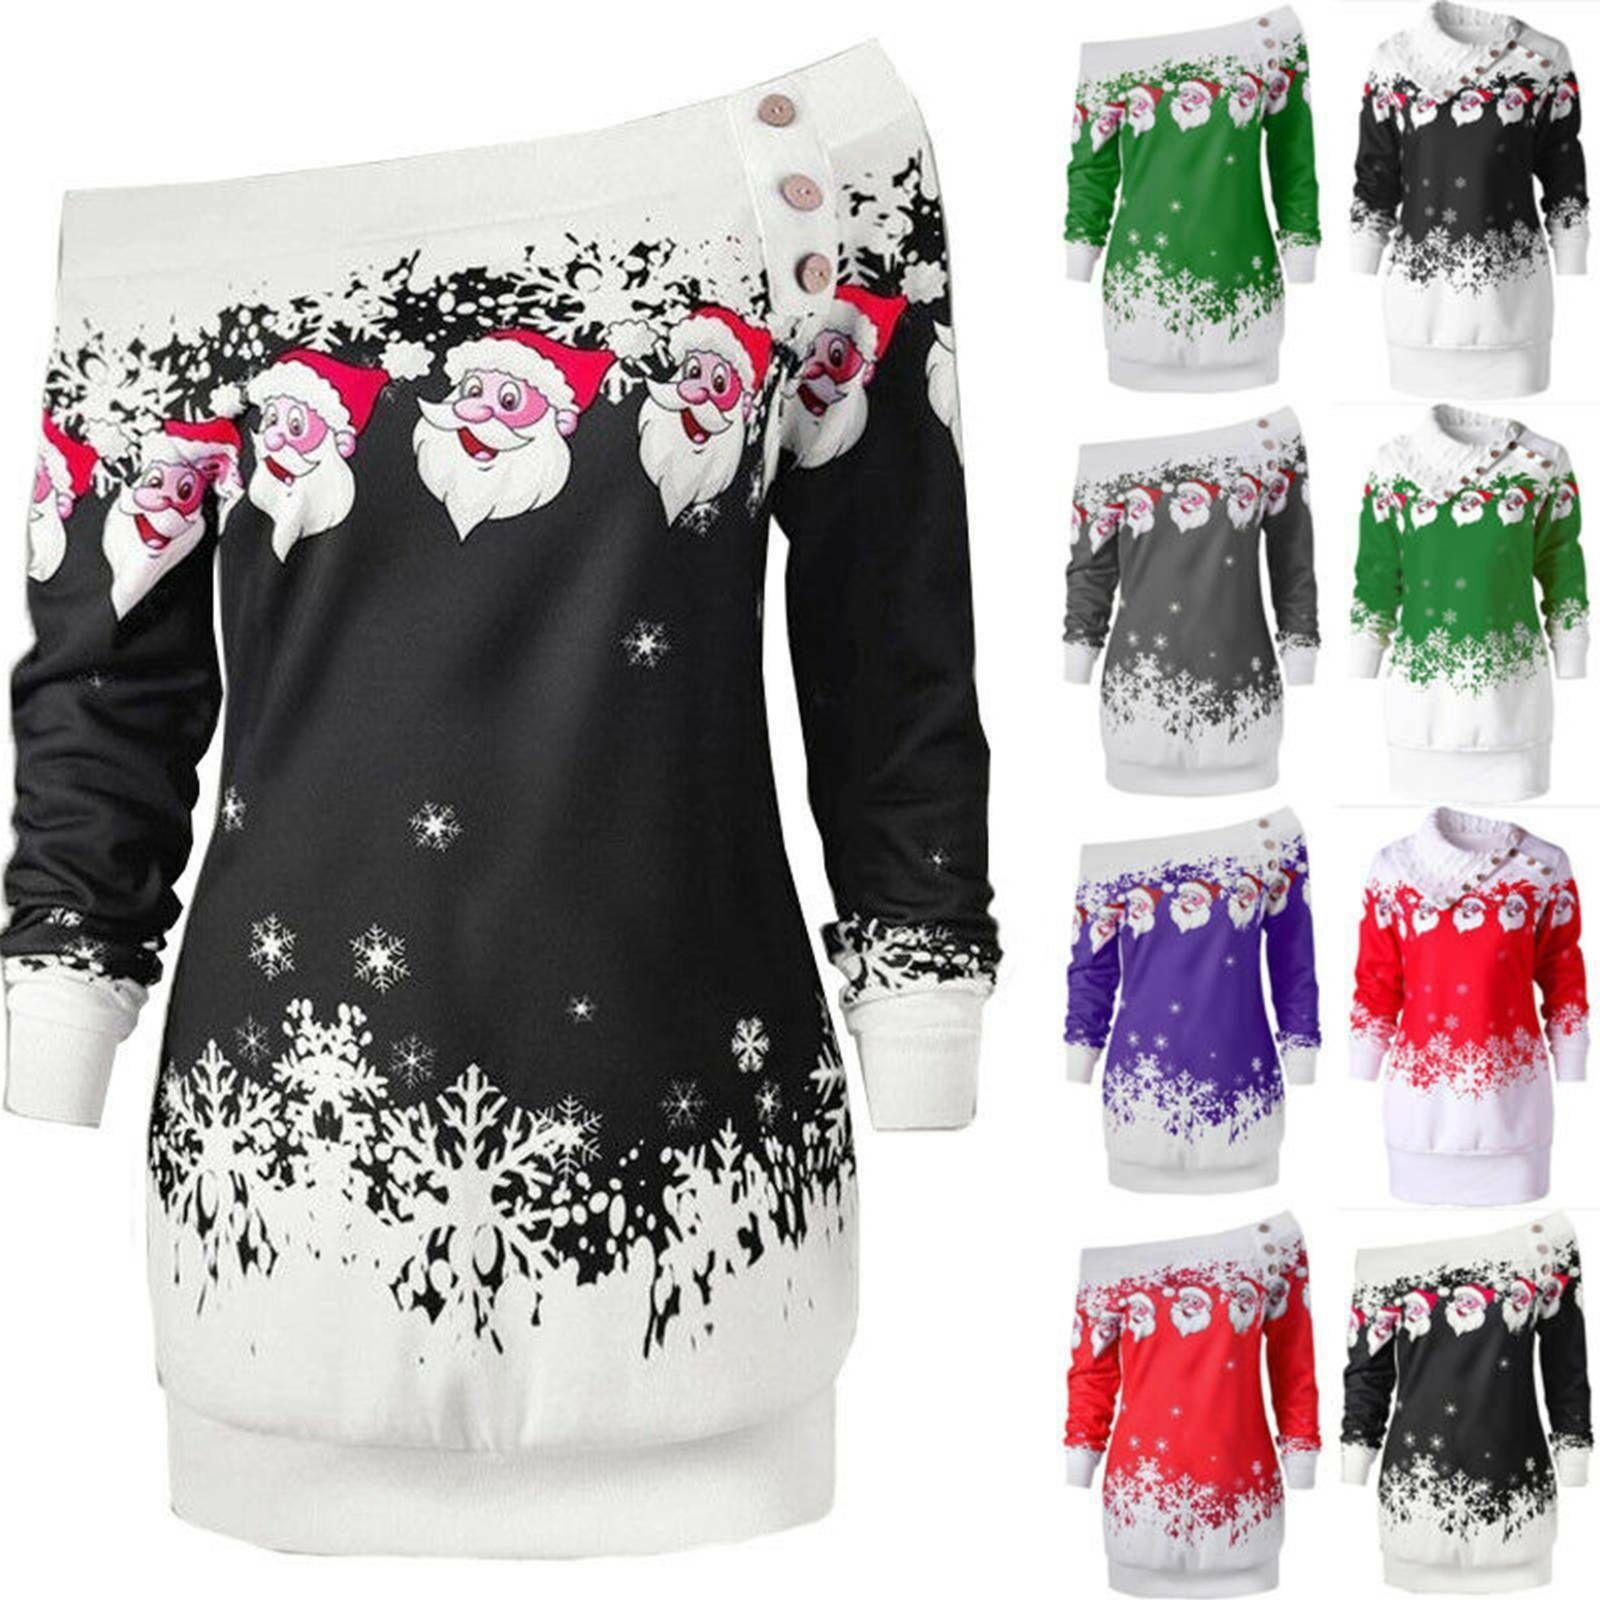 Womens Christmas Jumper Mini Dress Party Xmas Santa Claus